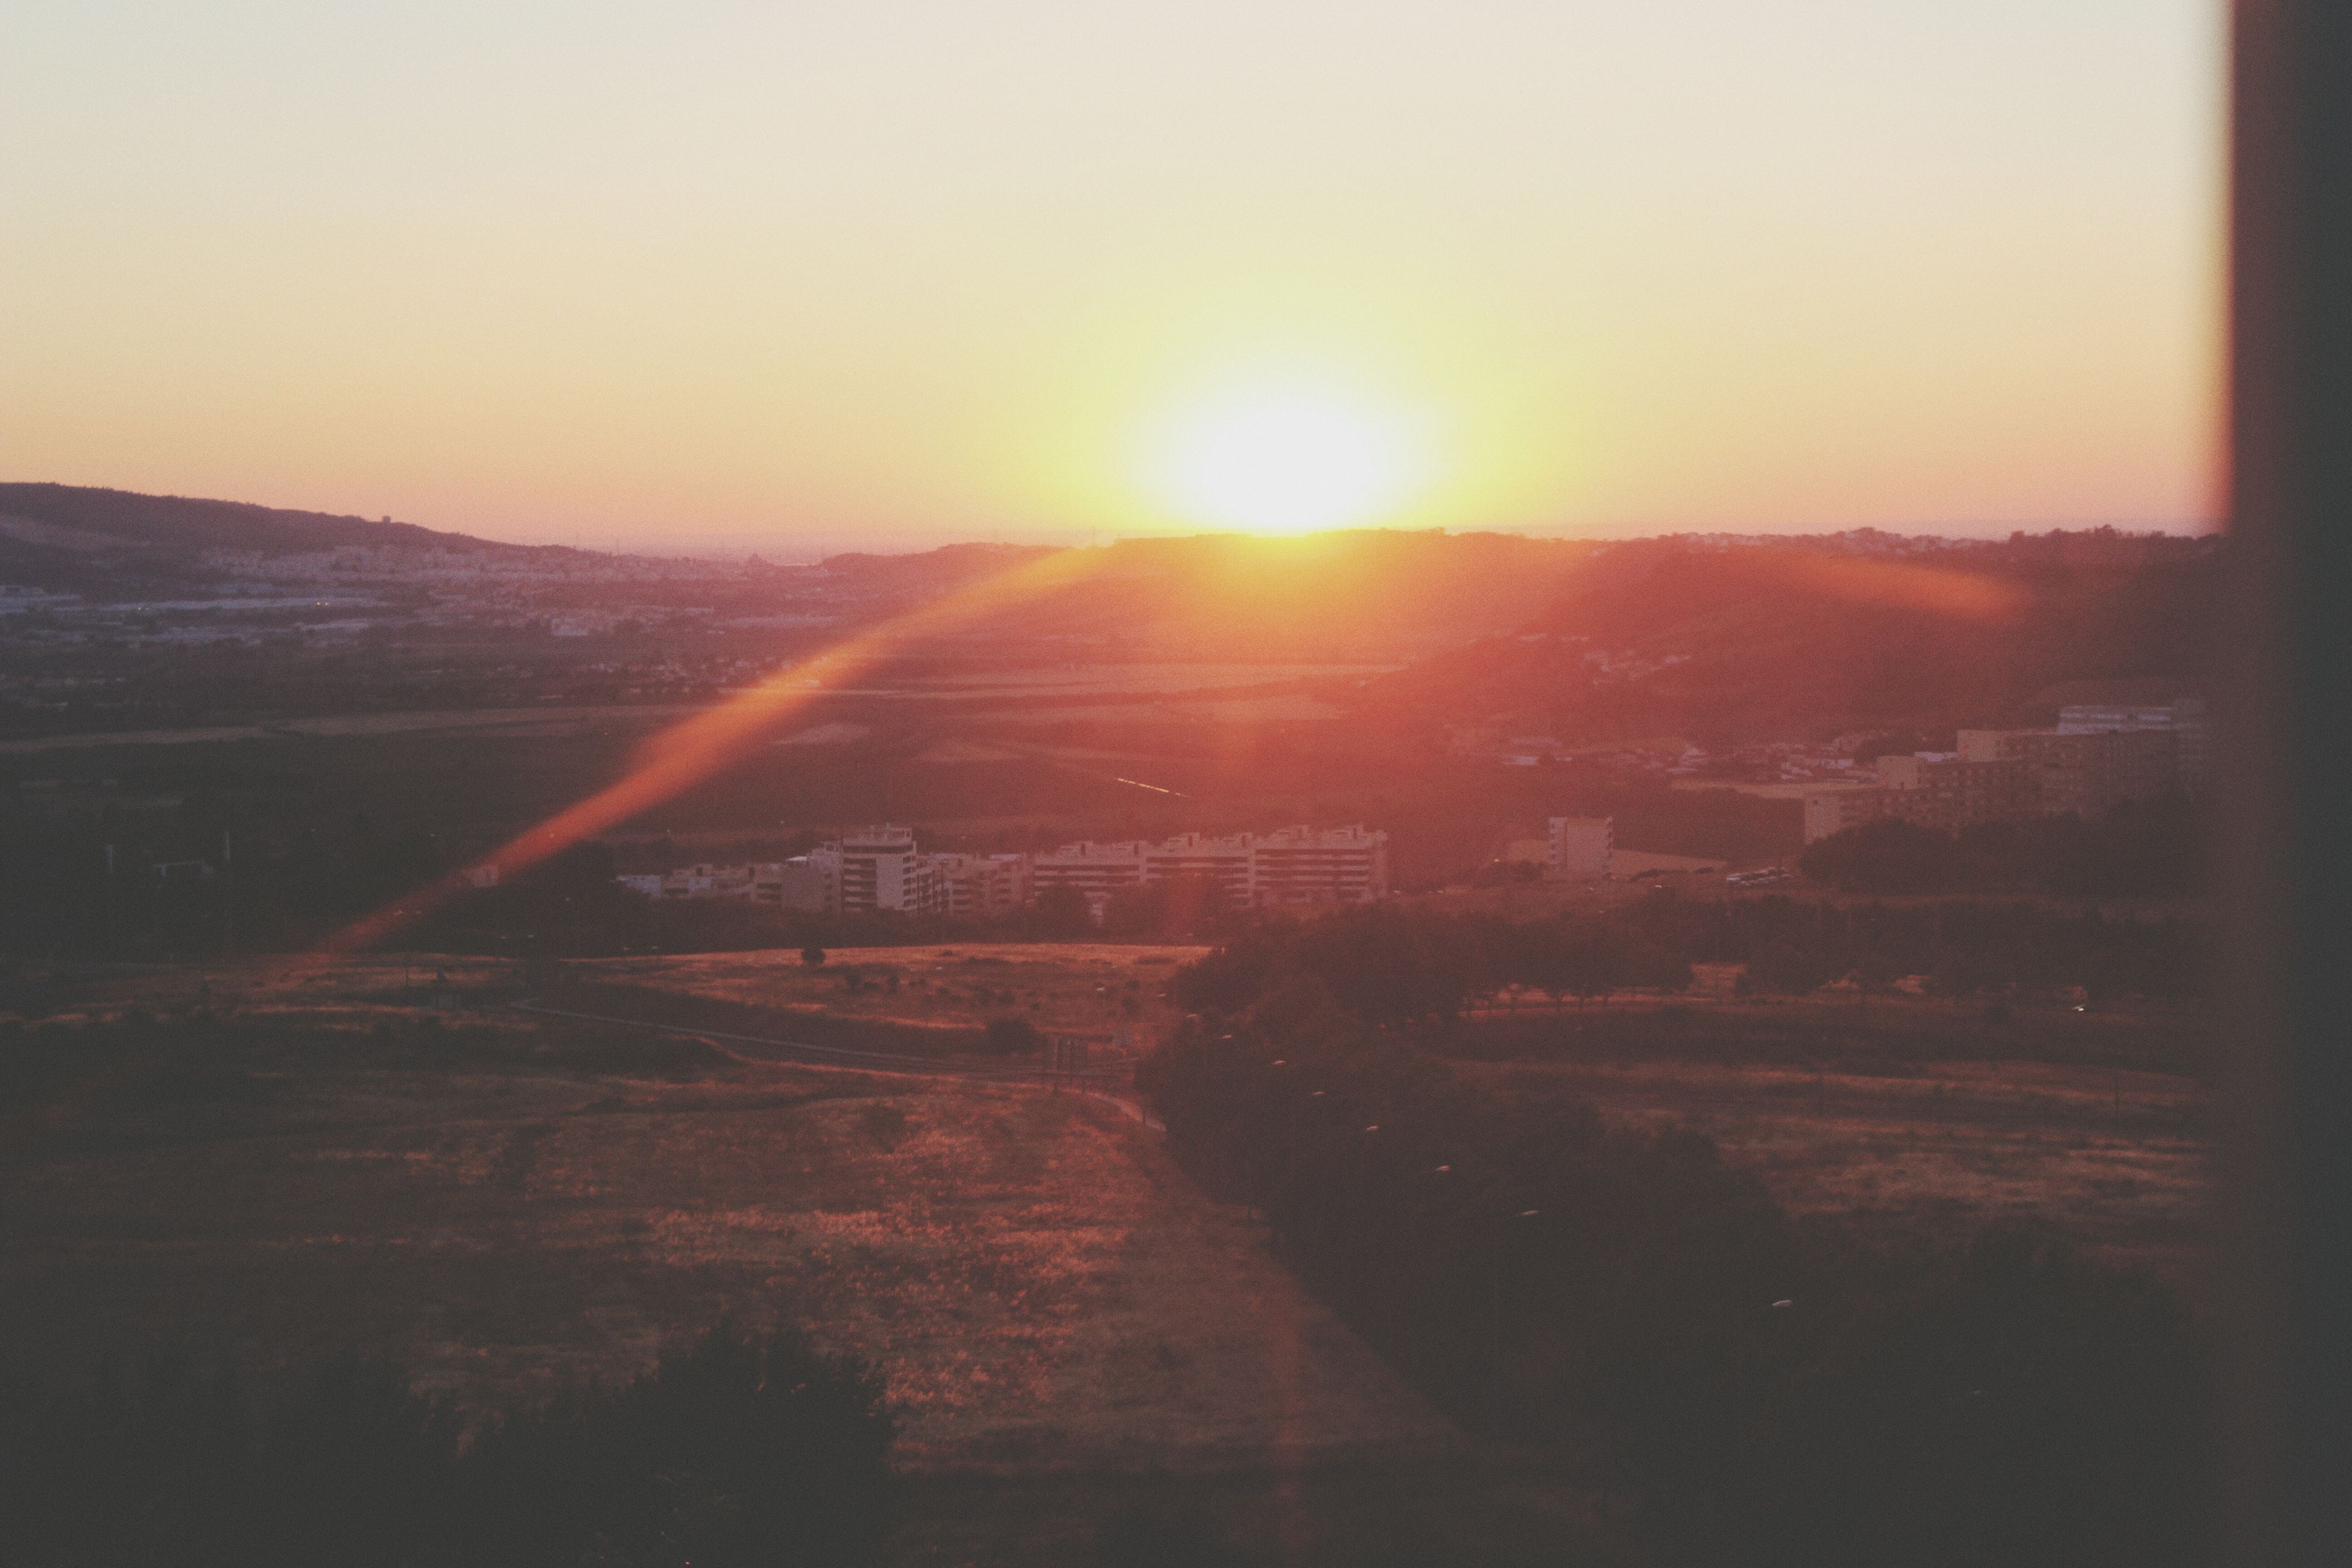 sun, sunset, sunlight, sunbeam, lens flare, clear sky, landscape, tranquility, tranquil scene, scenics, beauty in nature, nature, copy space, orange color, sky, bright, no people, idyllic, outdoors